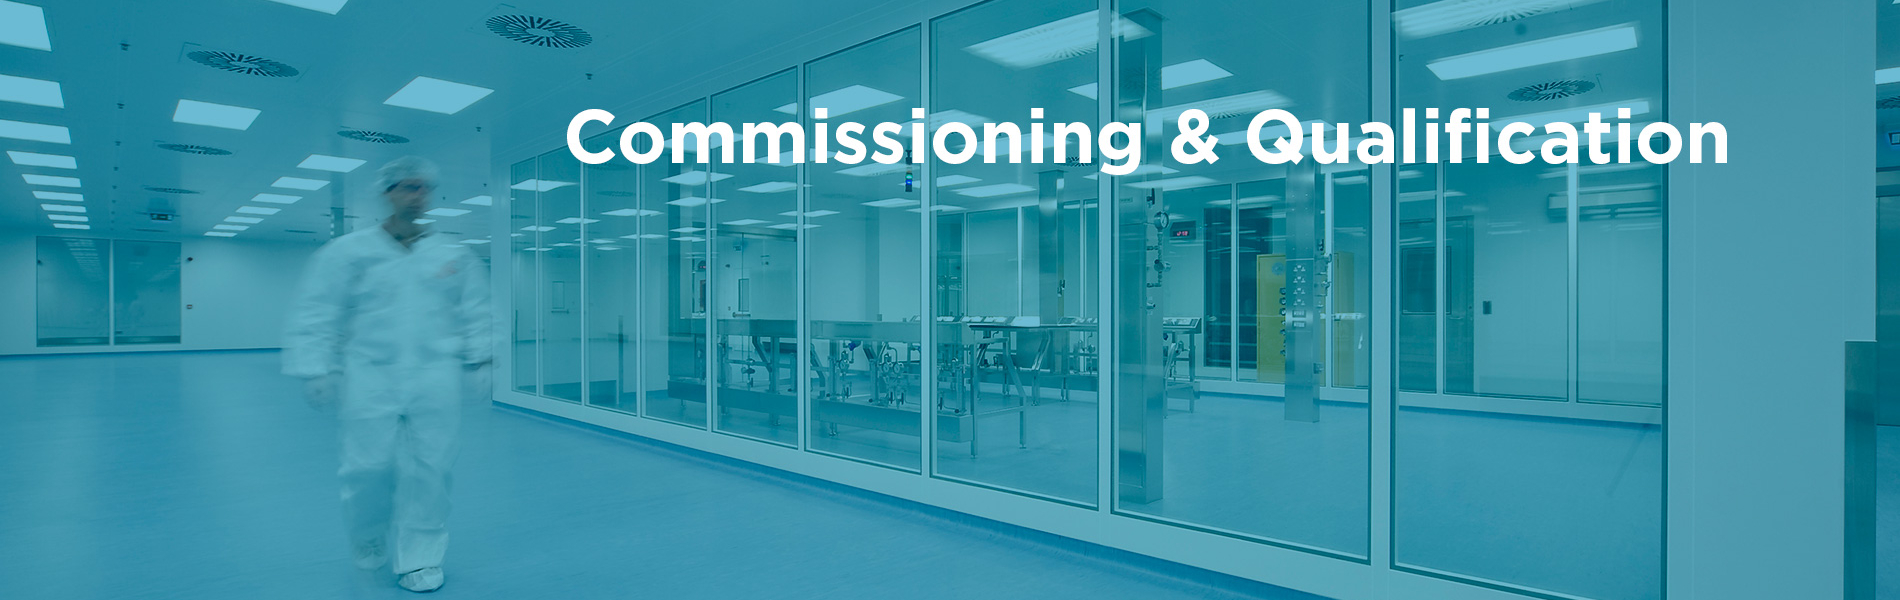 Commissioning and Qualification Resources Banner